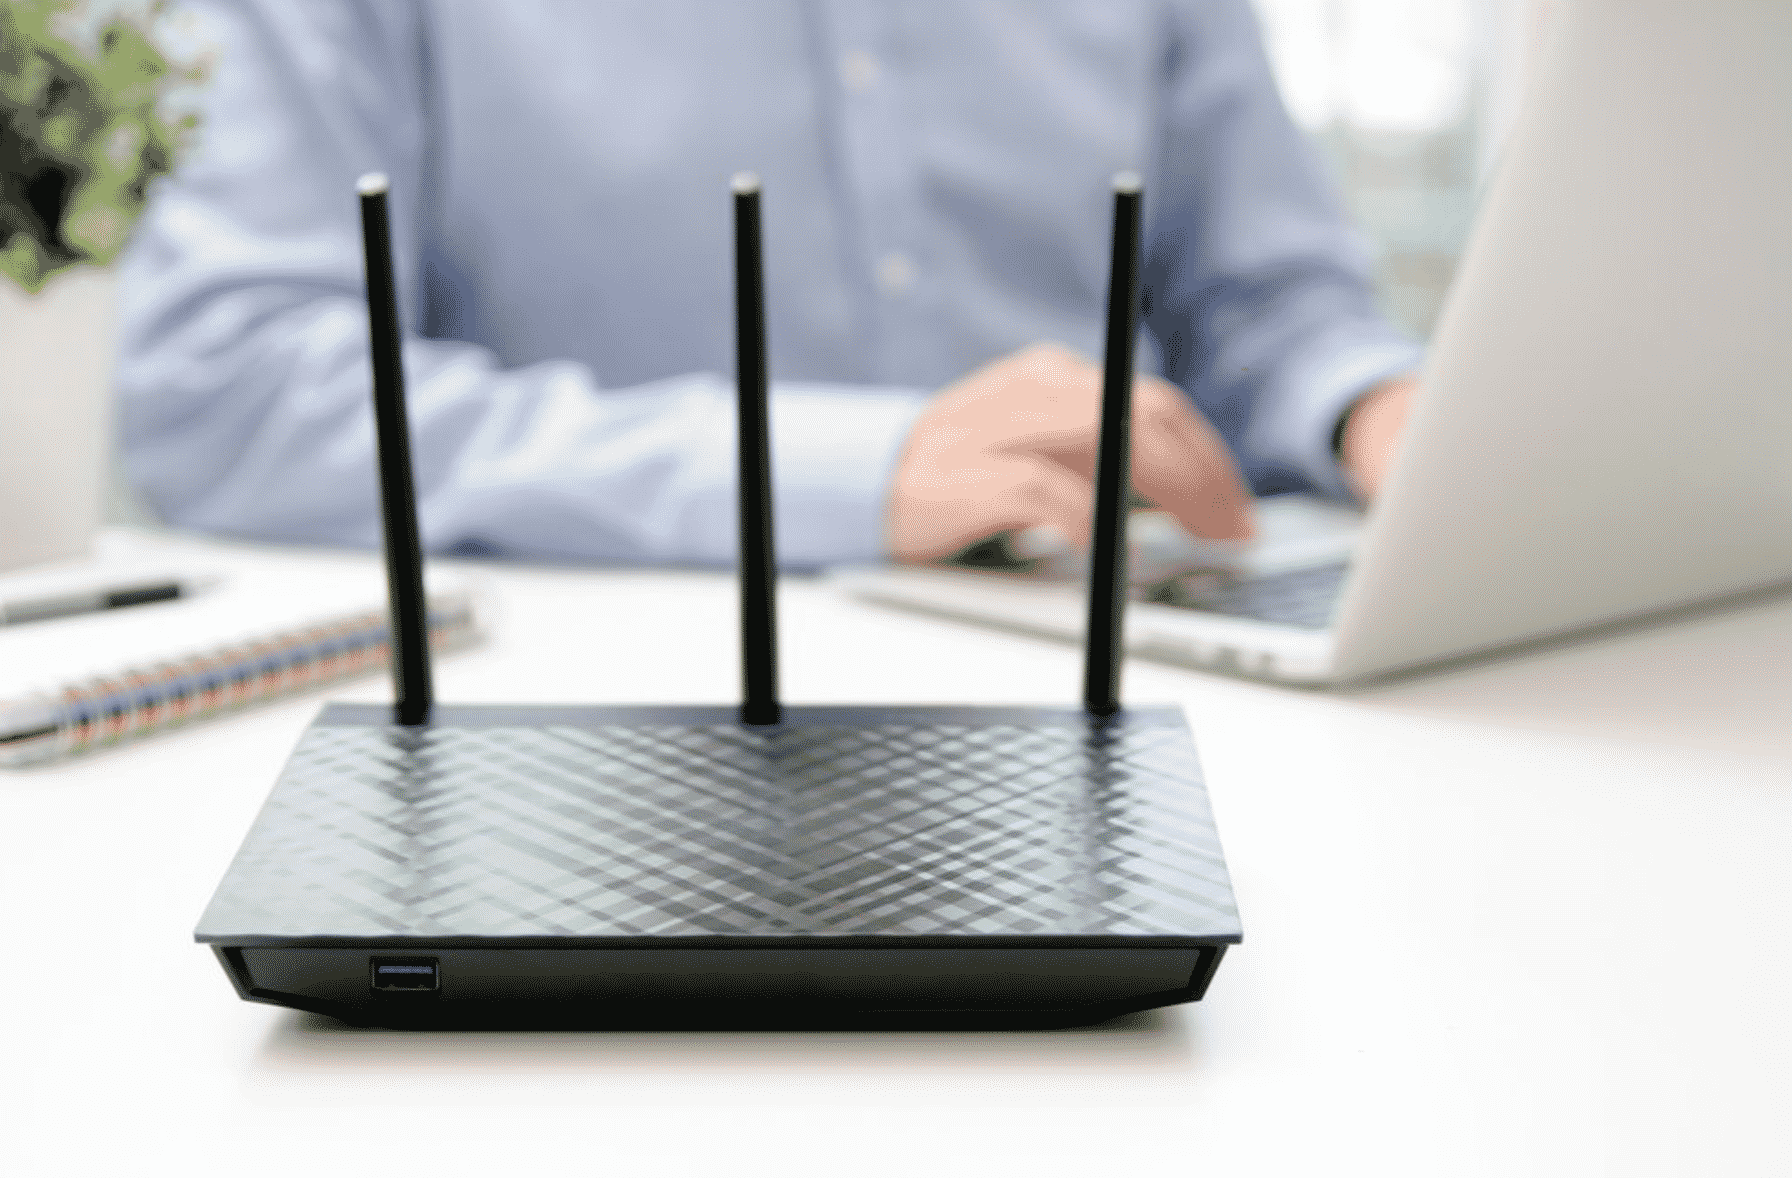 So You're Thinking About Getting a Router?